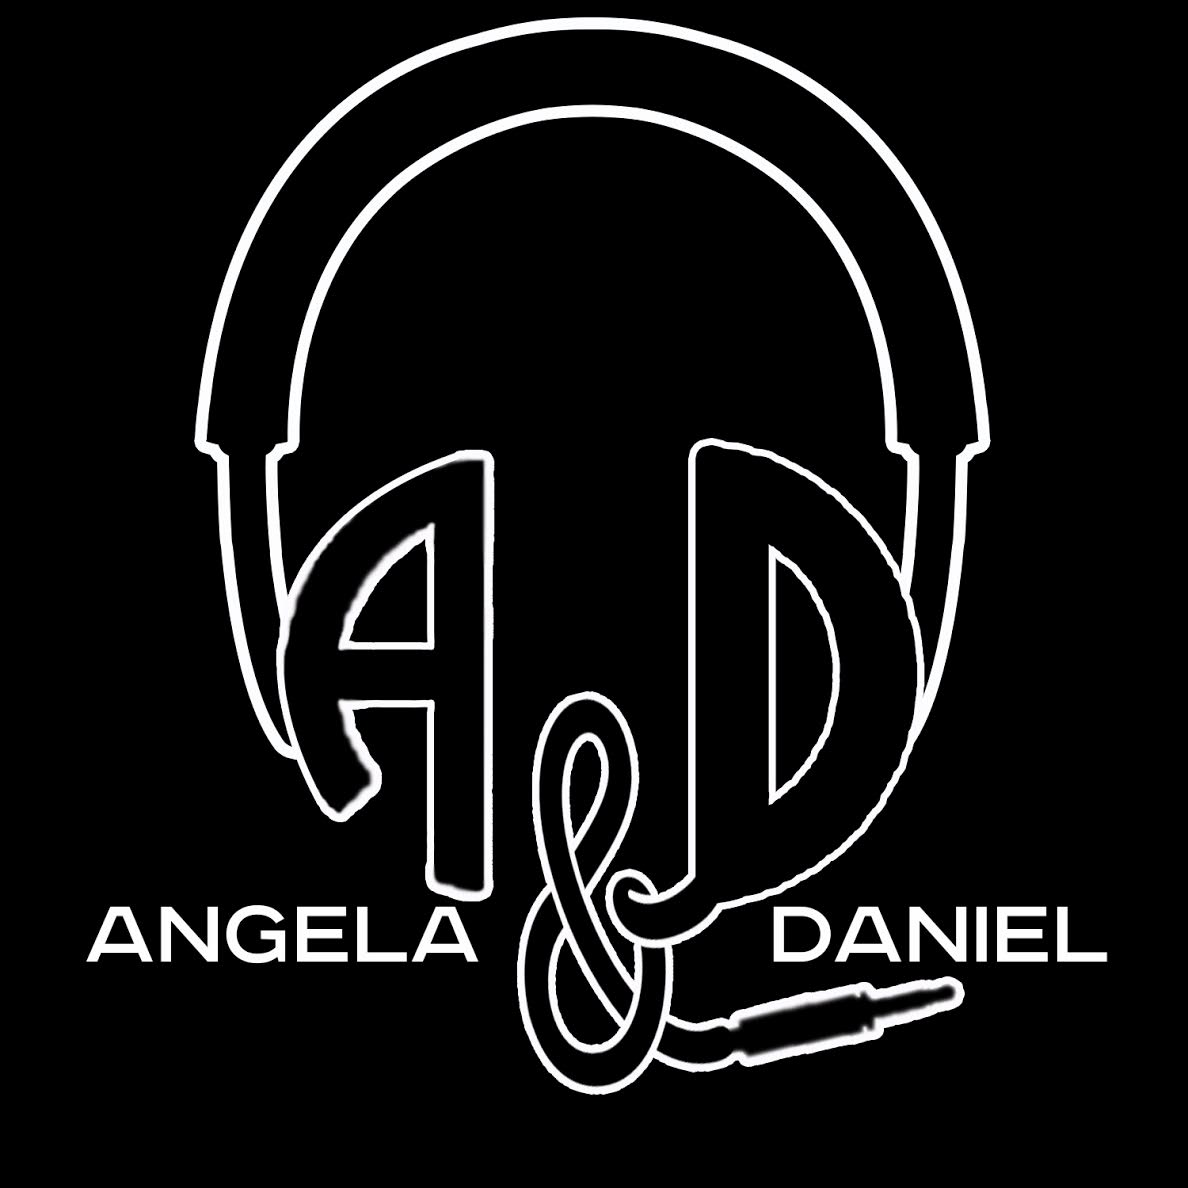 Angela & Daniel - NextWave Radio NetworkPodcasts